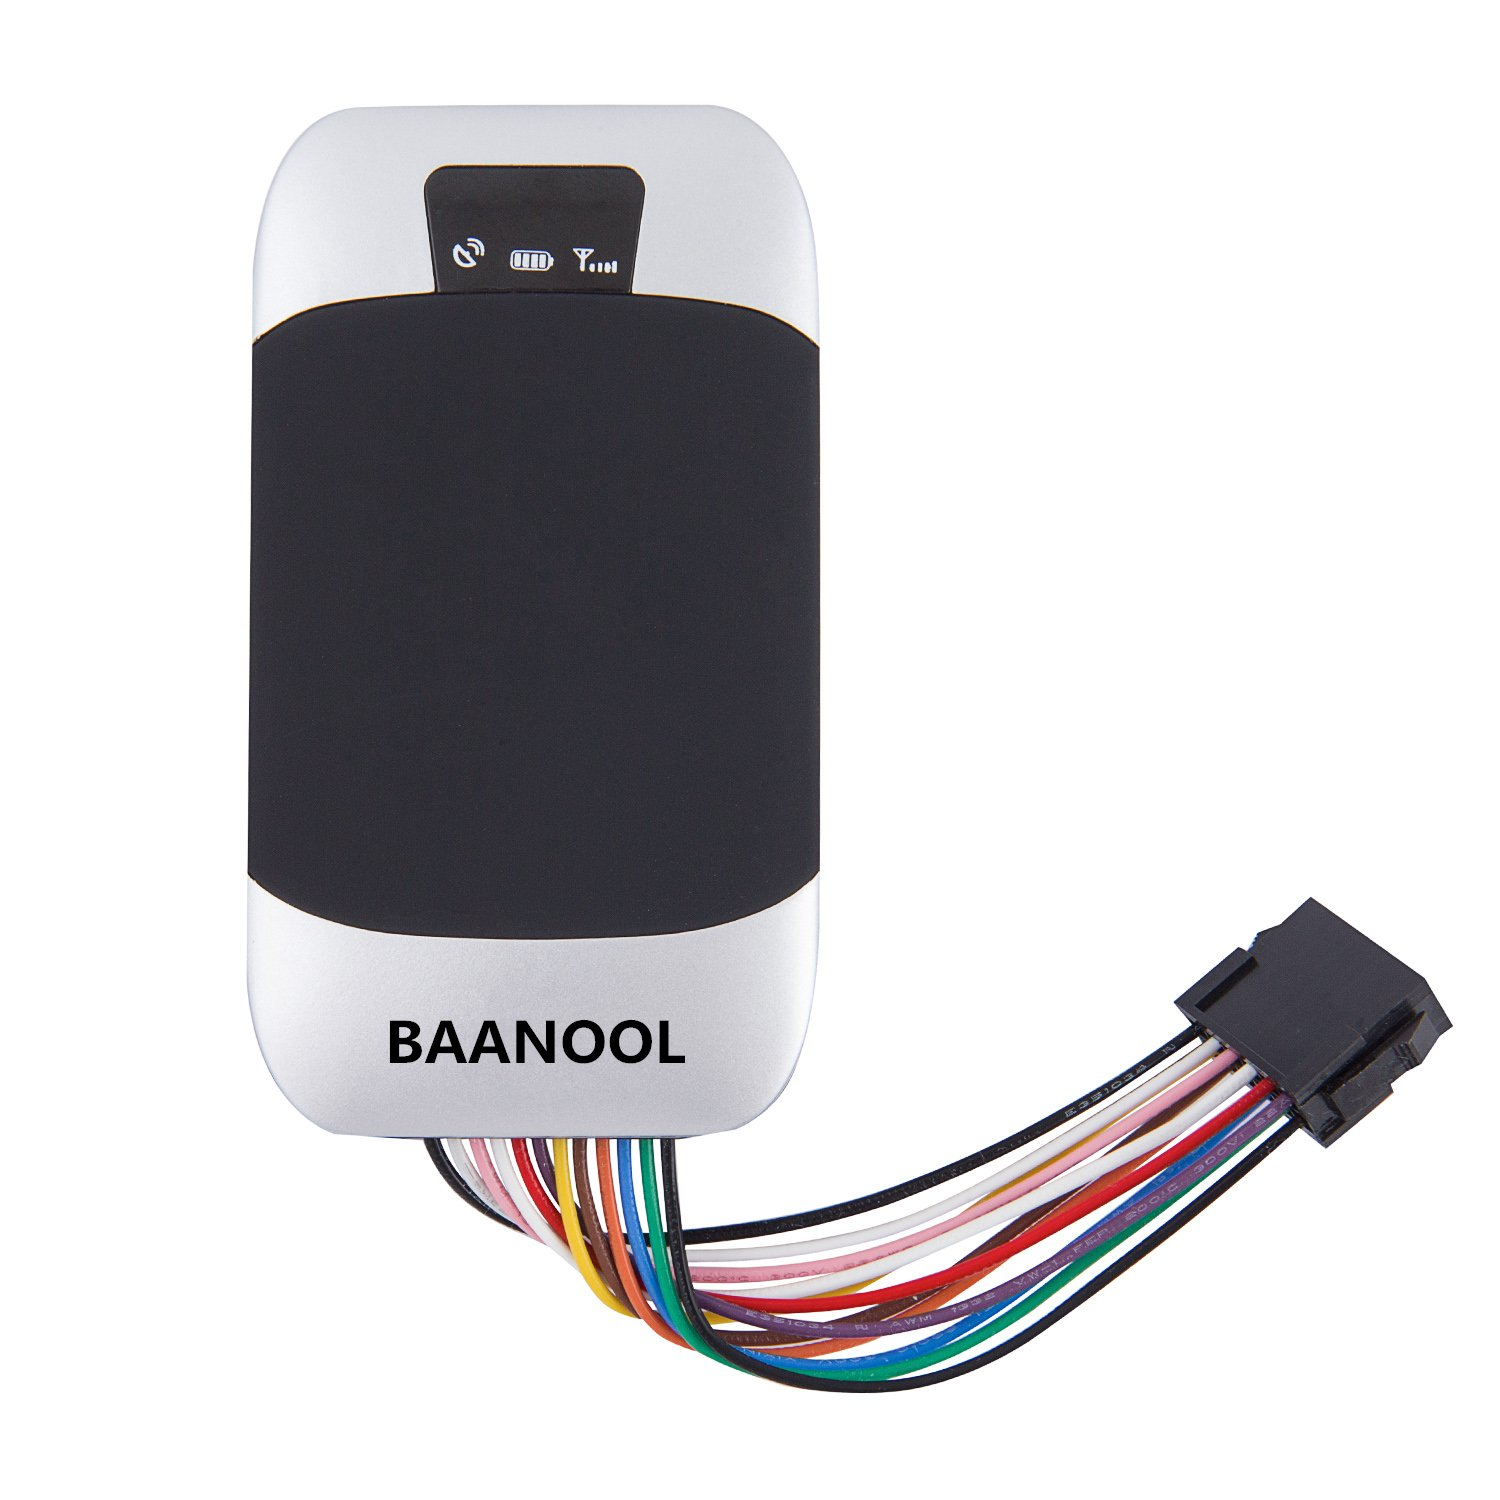 BAANOOL Waterproof GPS Tracker GPS Tracking Device for Vehicles External SIM TF Slot Car Tracker Device Real Time GPS Tracker GSM Vehicle Tracker 303F